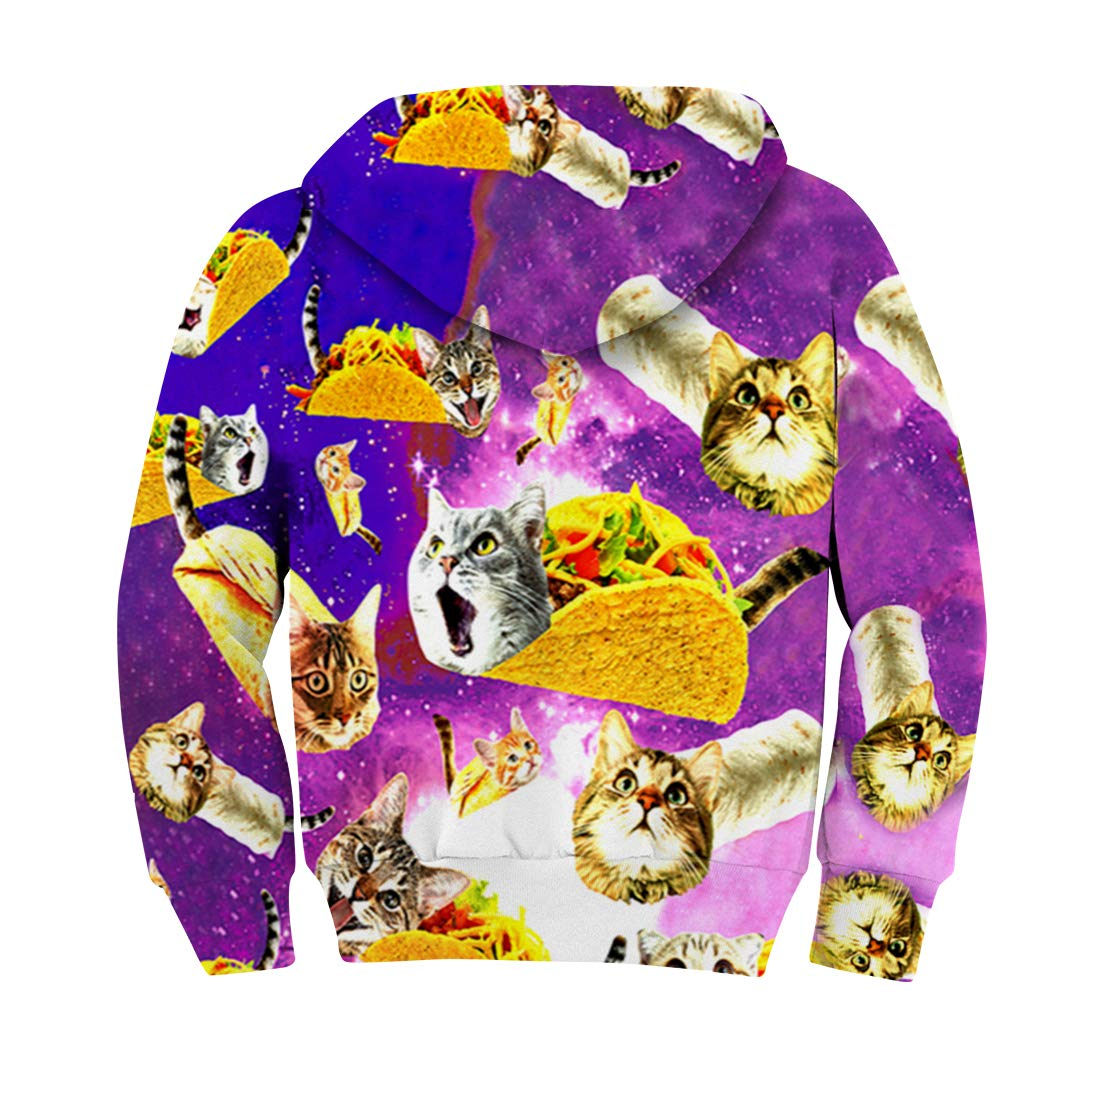 RAISEVERN Spring Autumn Winter Teens Long Sleeve 3D Pullover Hoodies Pizza Cats Print Sweatshirts Outfits Boys Girls Casual Wear